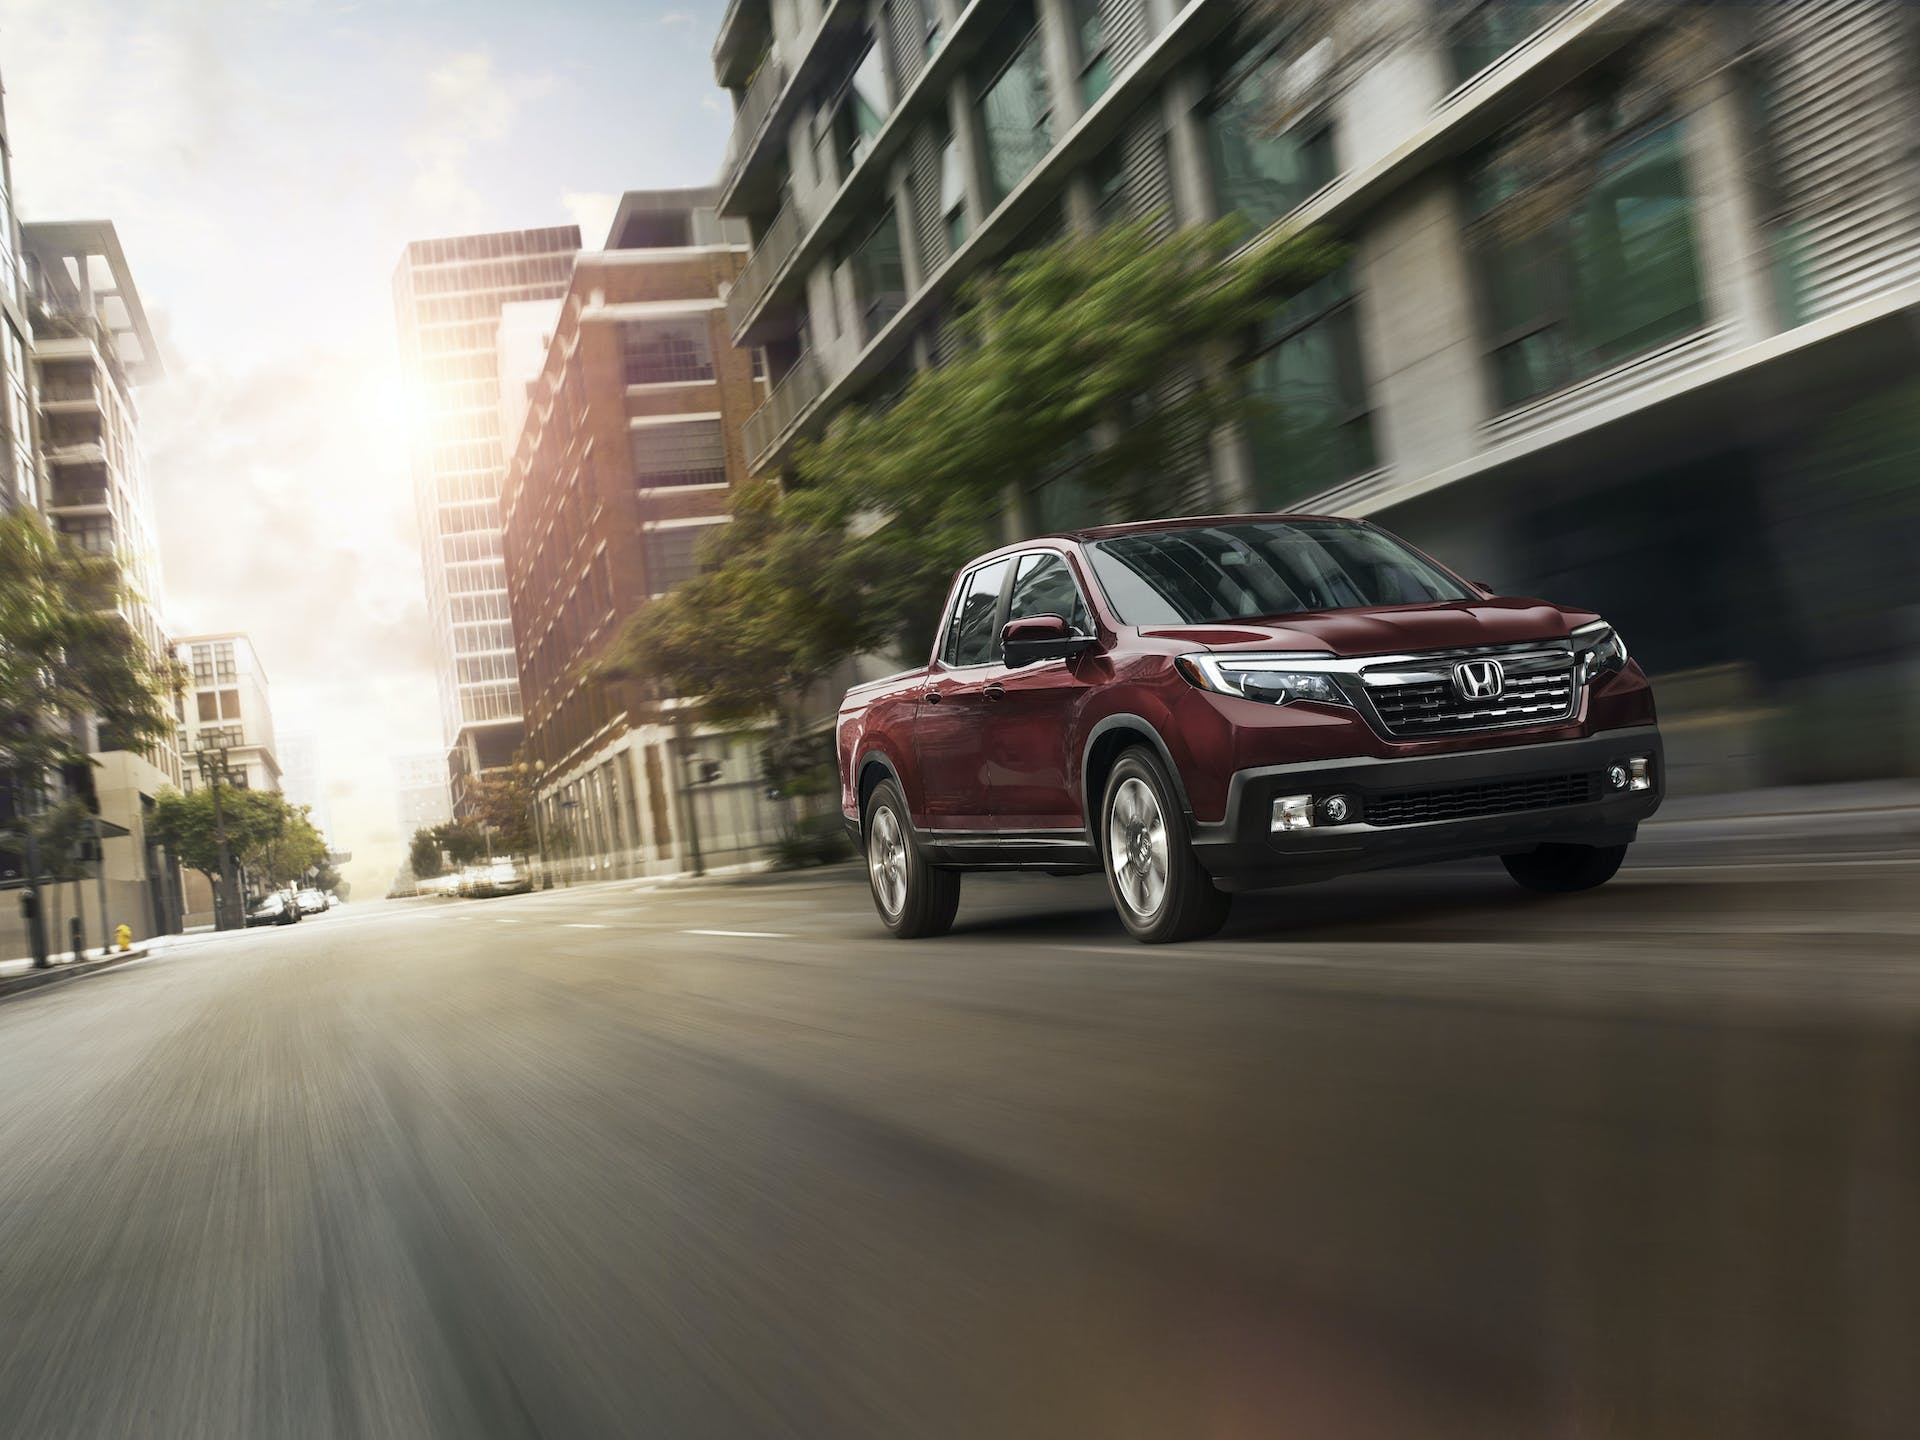 Washington Honda is a Honda Dealership near McGovern, PA | 2020 Honda Ridgeline driving through city